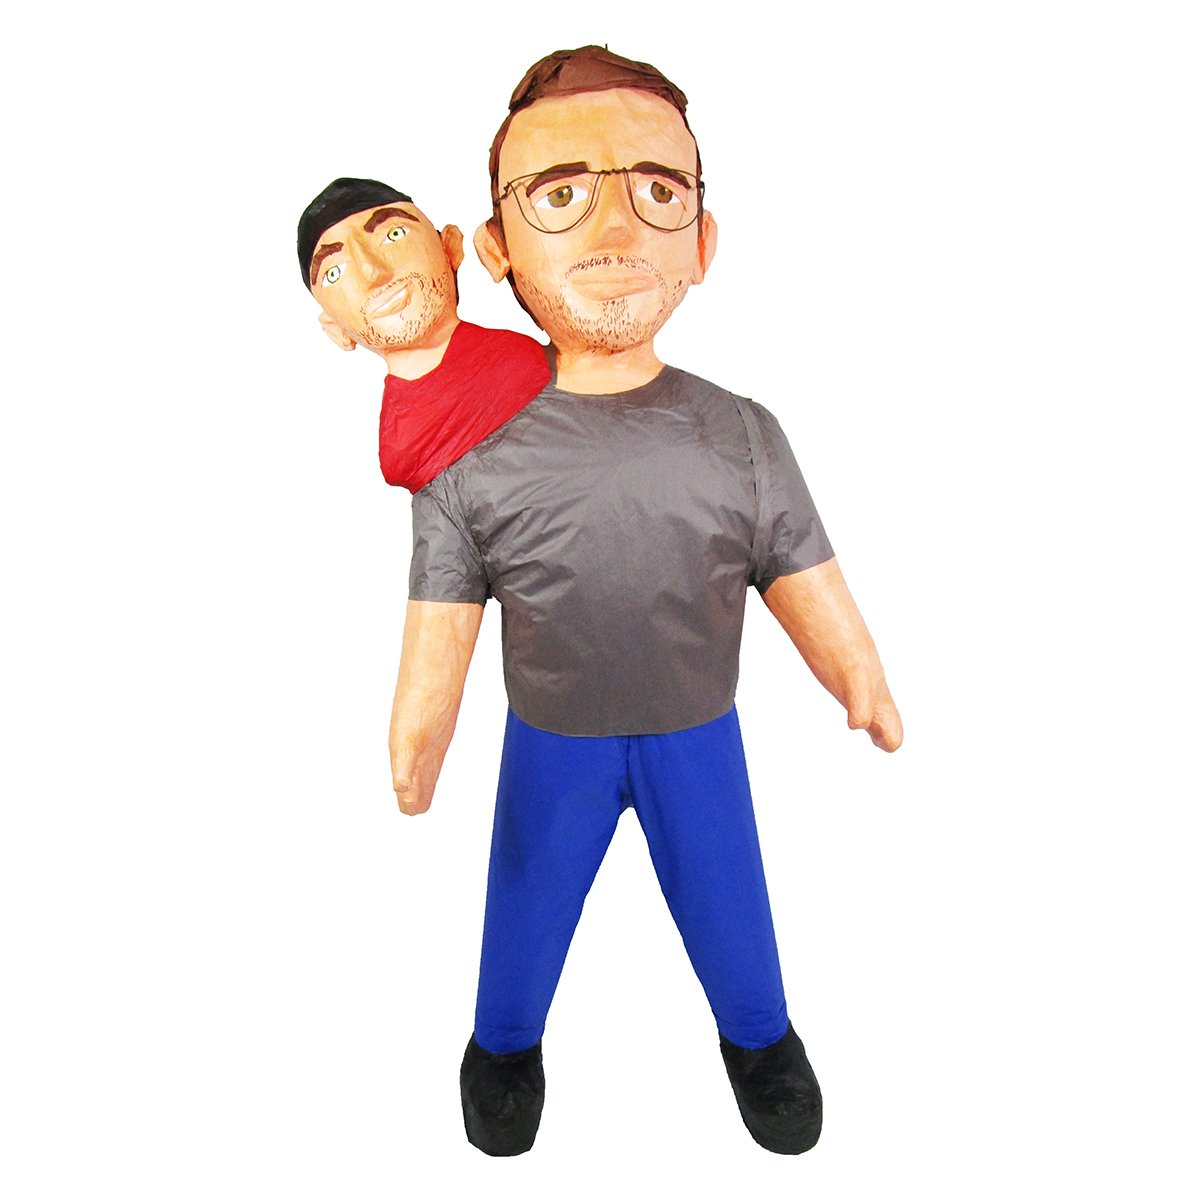 CUSTOM TWO HEADED PERSON PINATA